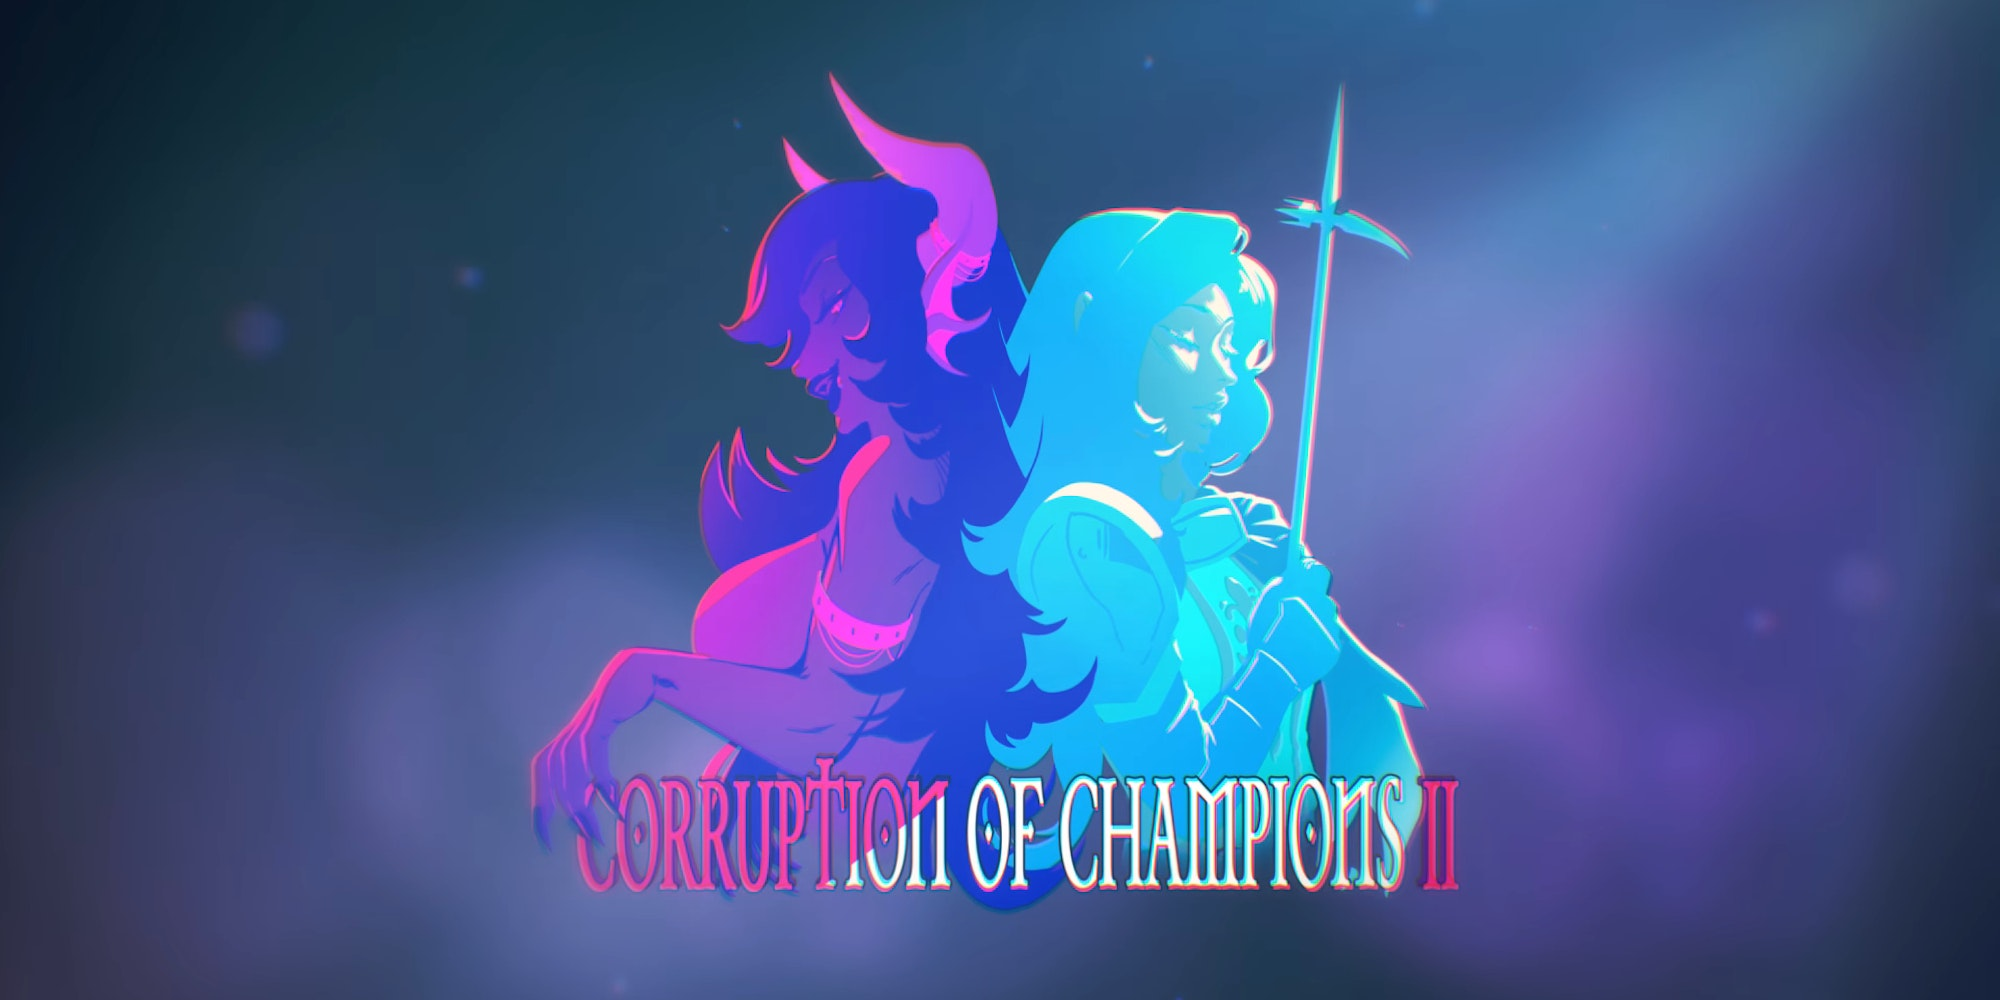 Corruption of Champions Steam Adult Game